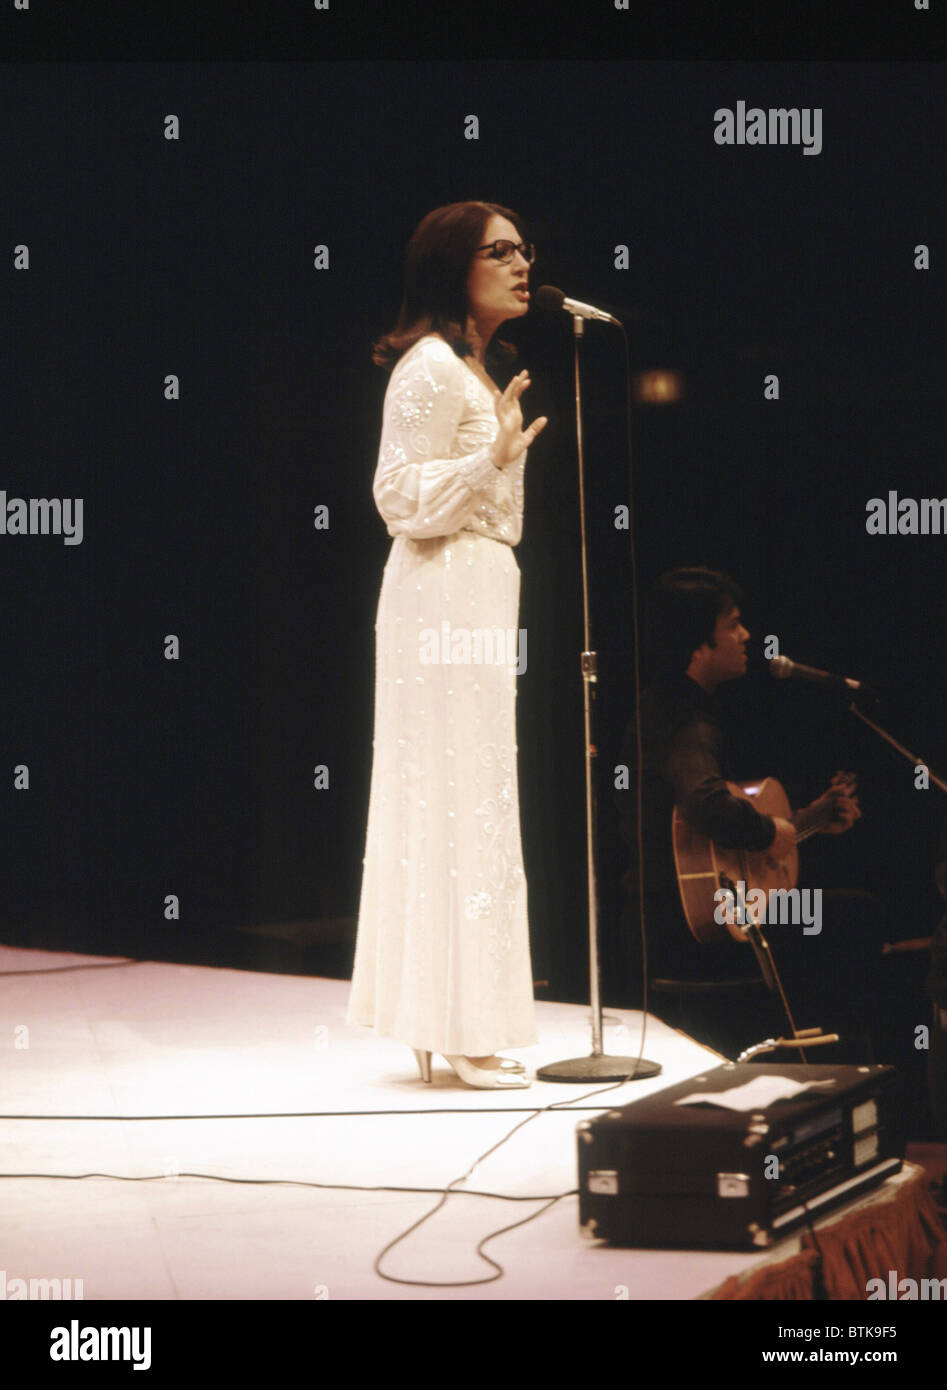 Nana Mouskouri, 1981, Millrun Playhouse Theatre, à la ronde, Niles, Illinois. Banque D'Images